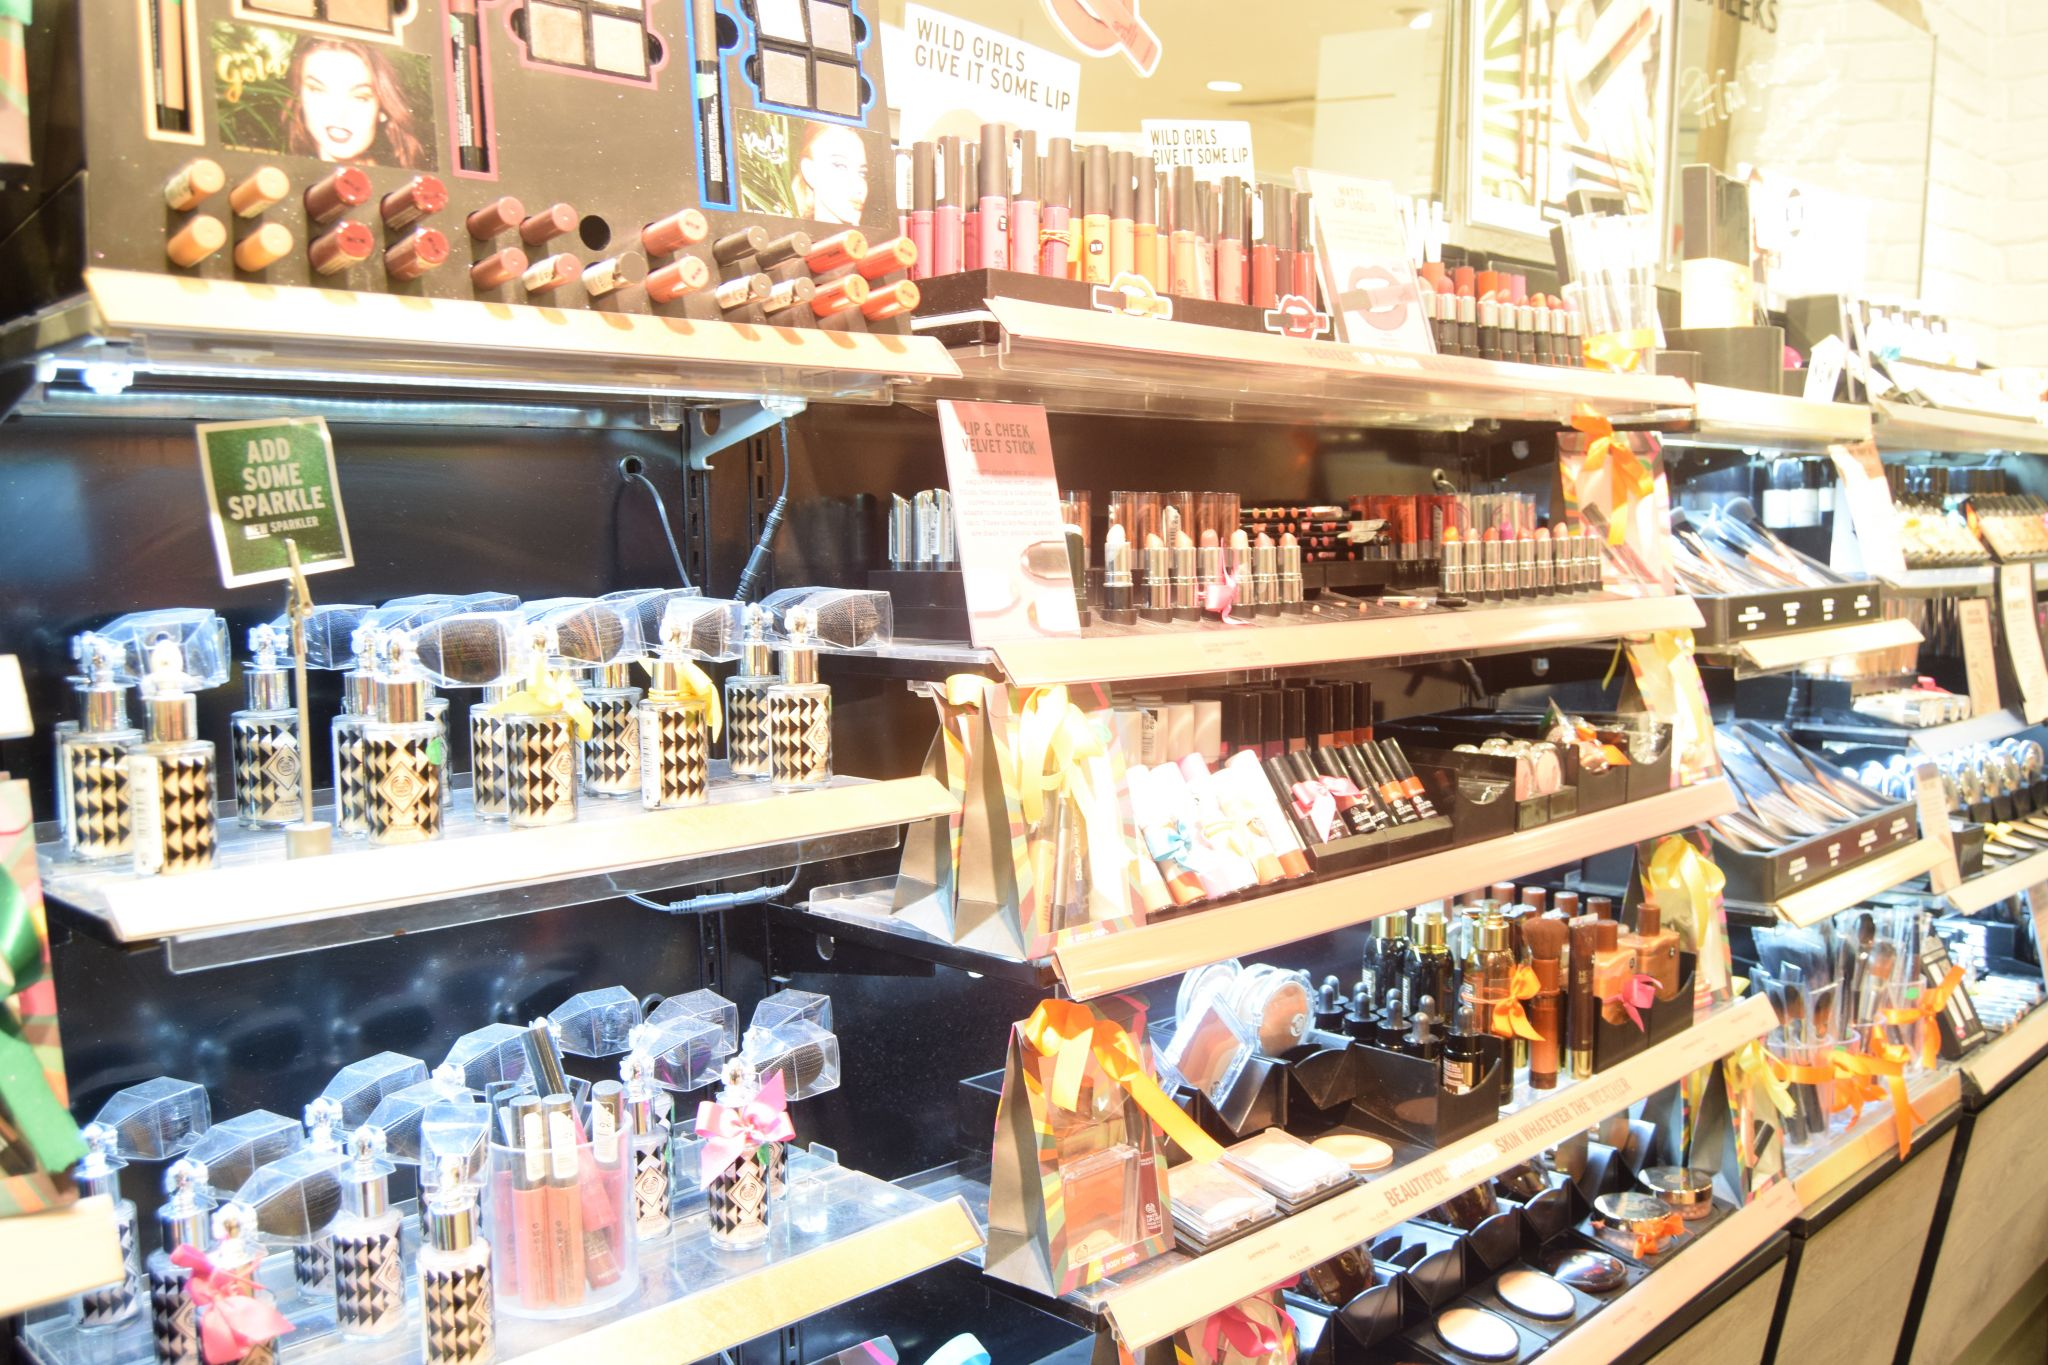 DSC 0615 1440x960 - The Body Shop: My Top Picks